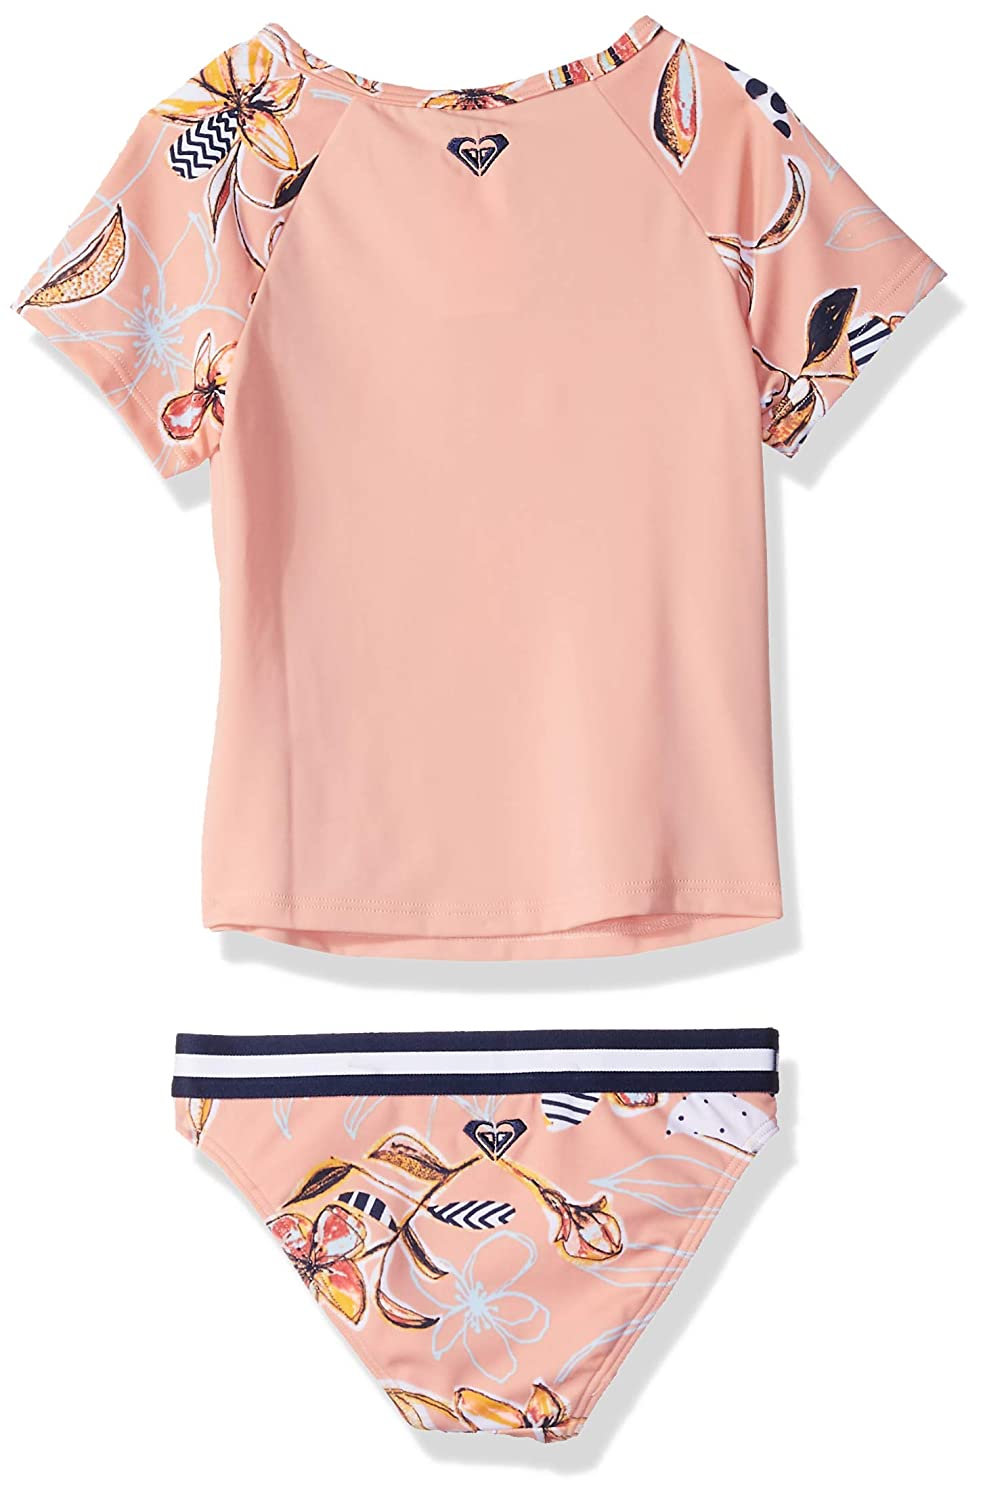 Roxy Girls Lets Be Short Sleeve Rashguard Swimsuit Set ERLWR03084